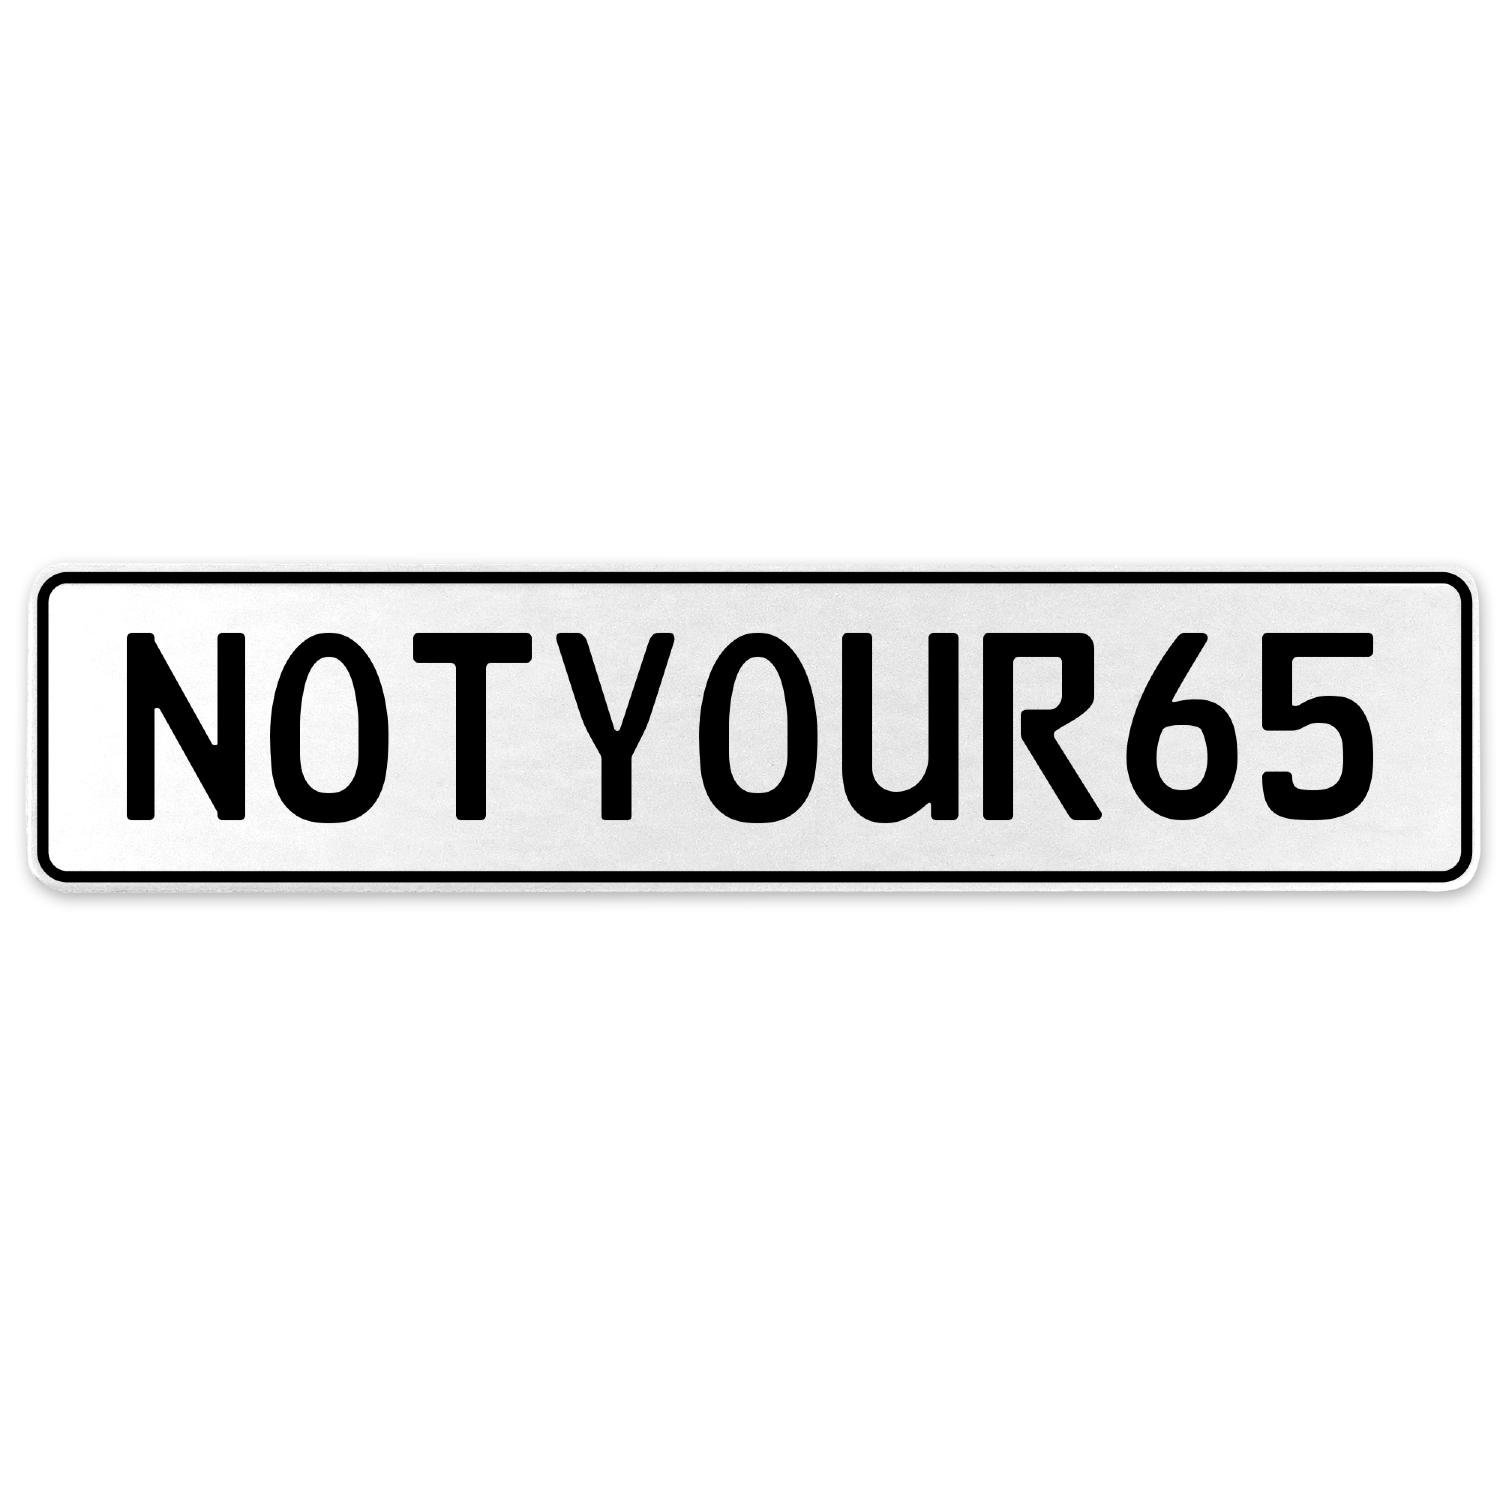 Vintage Parts 555454 NOTYOUR65 White Stamped Aluminum European License Plate